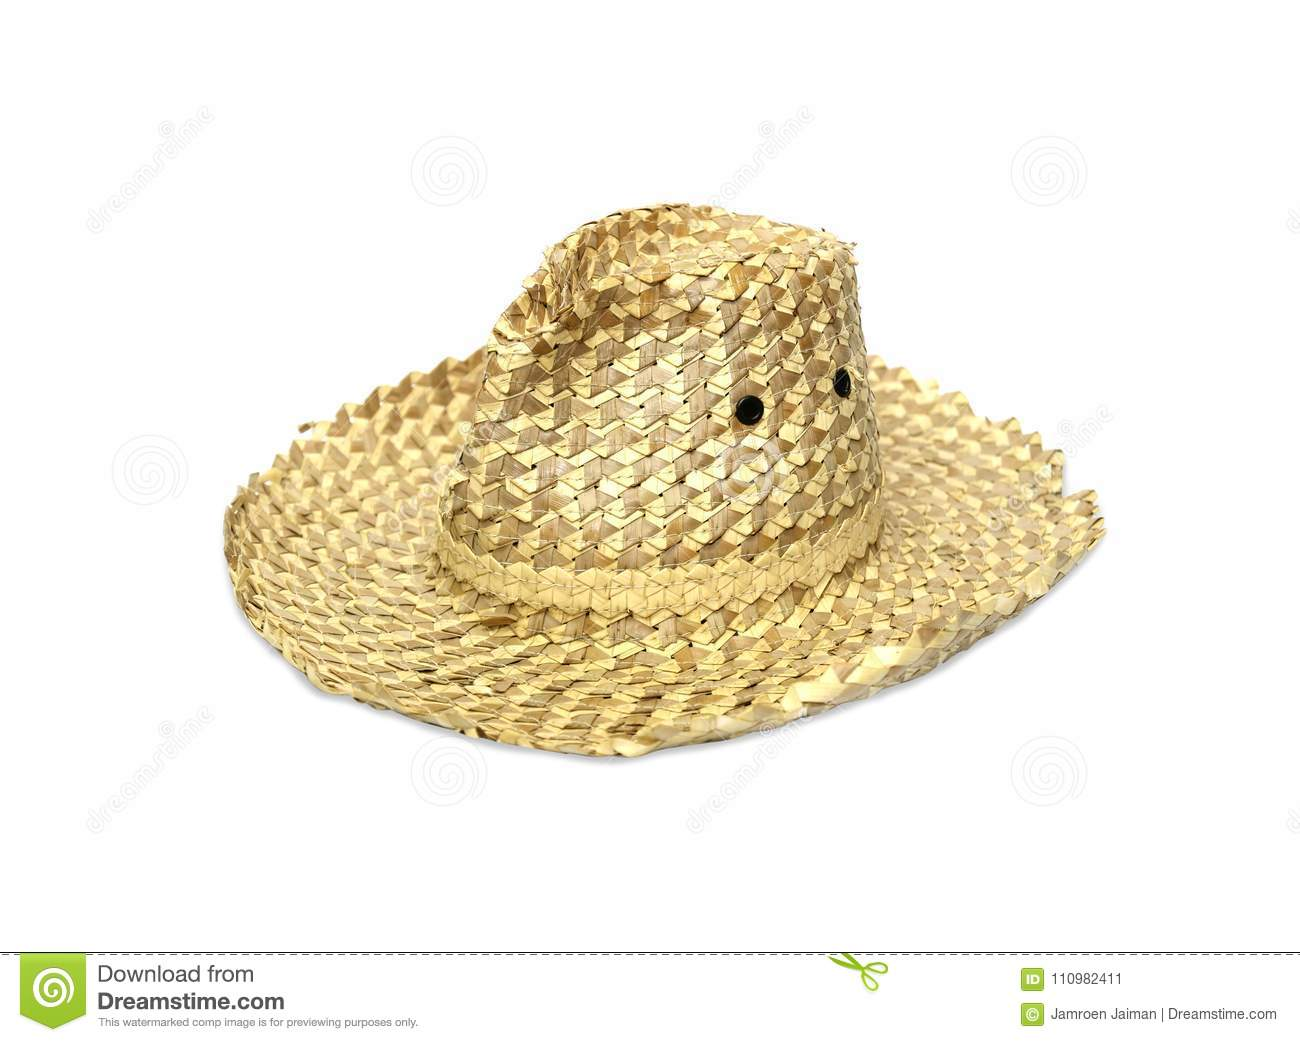 Old Straw Hat On A White Background Stock Image - Image of head ... 4a54843460a8